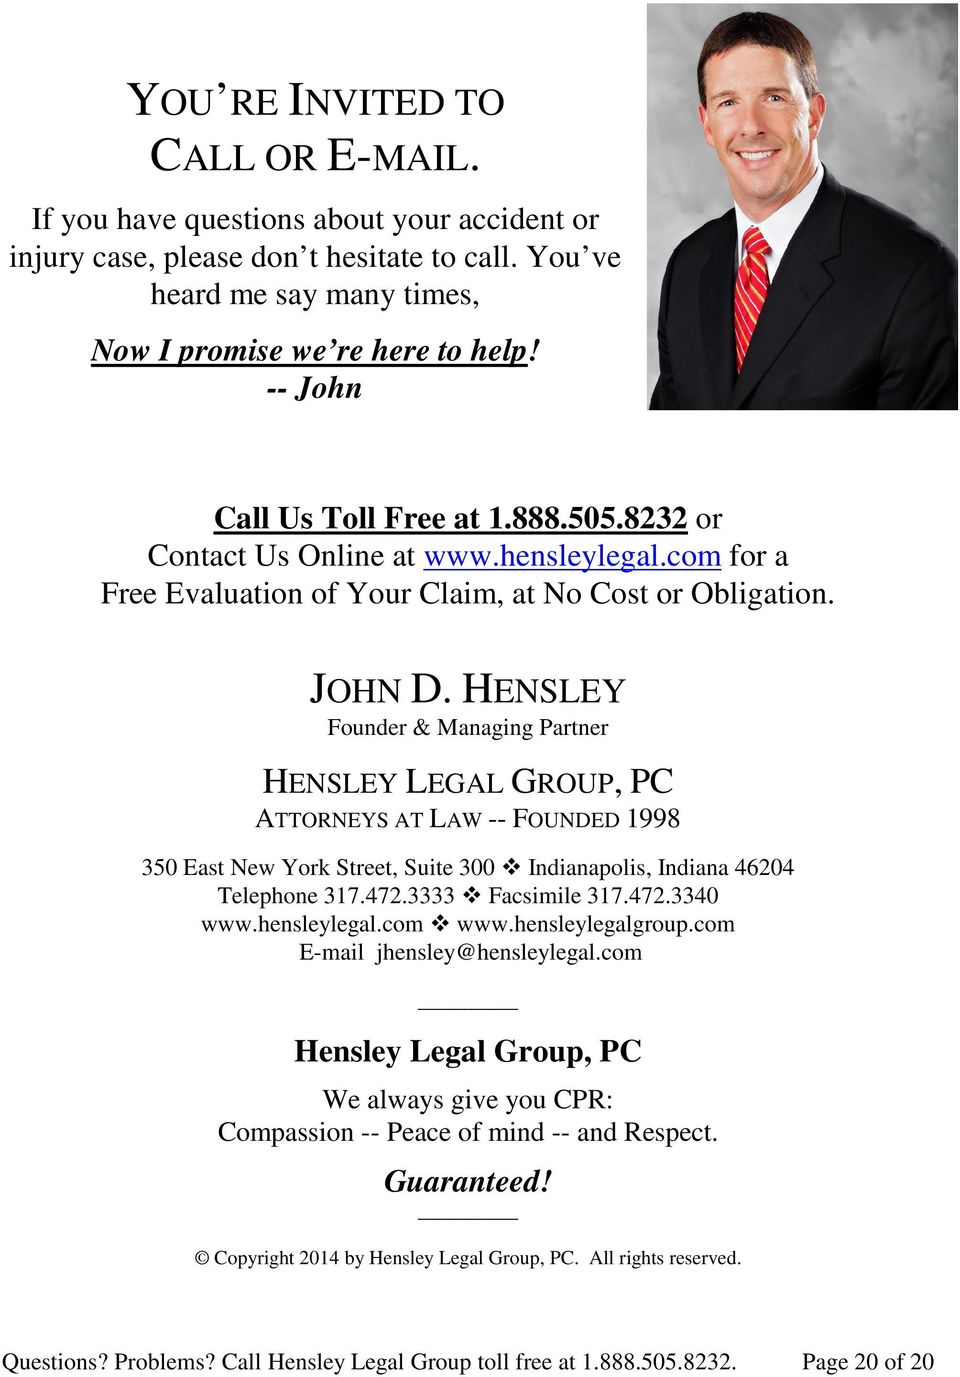 HENSLEY Founder & Managing Partner HENSLEY LEGAL GROUP, PC ATTORNEYS AT LAW -- FOUNDED 1998 350 East New York Street, Suite 300 Indianapolis, Indiana 46204 Telephone 317.472.3333 Facsimile 317.472.3340 www.